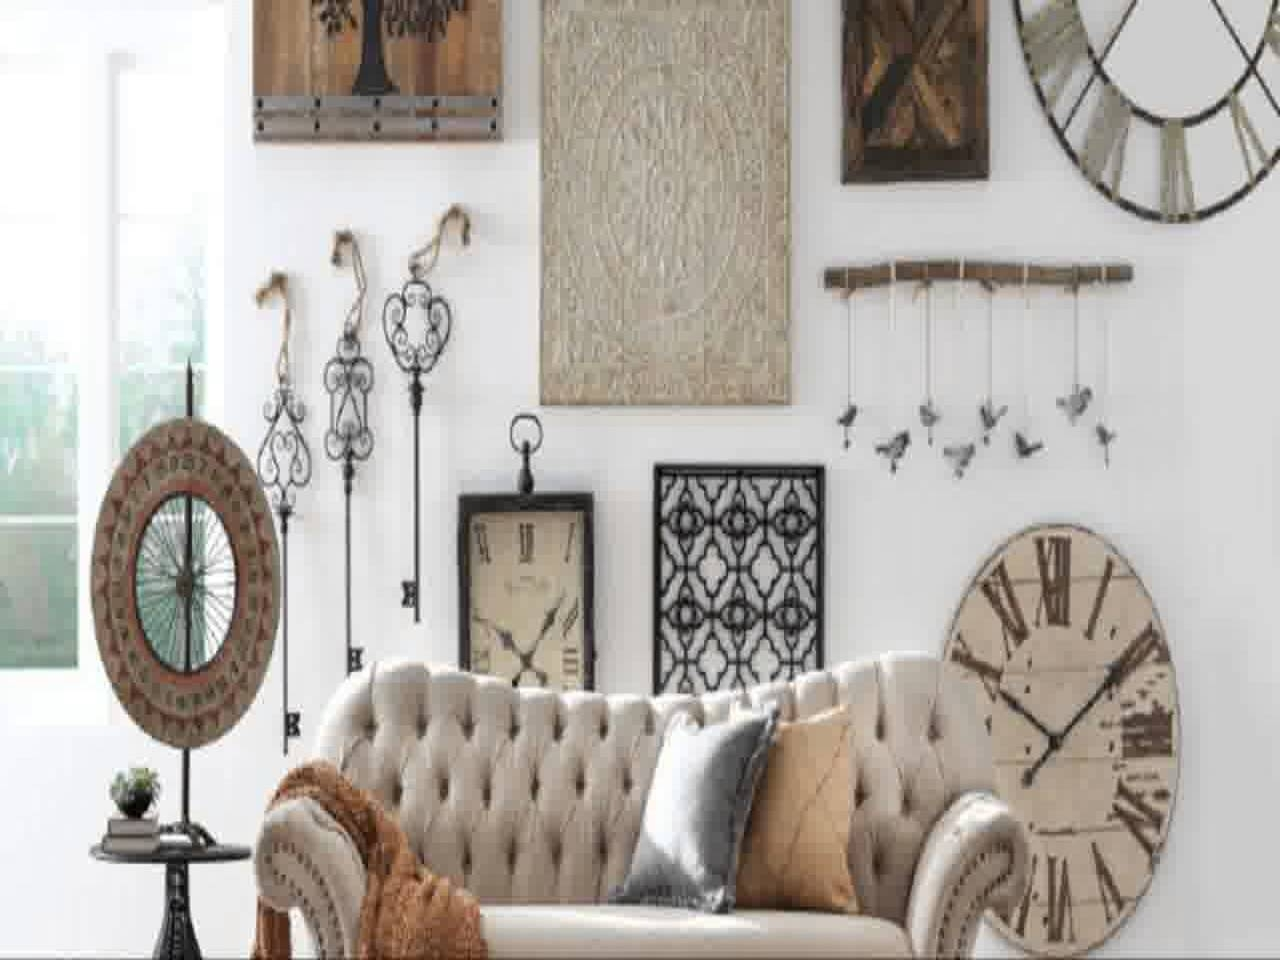 Wall Decoration. Wall Decor Ross – Wall Decoration And Wall Art Ideas Intended For Most Current Ross Wall Art (Gallery 1 of 20)